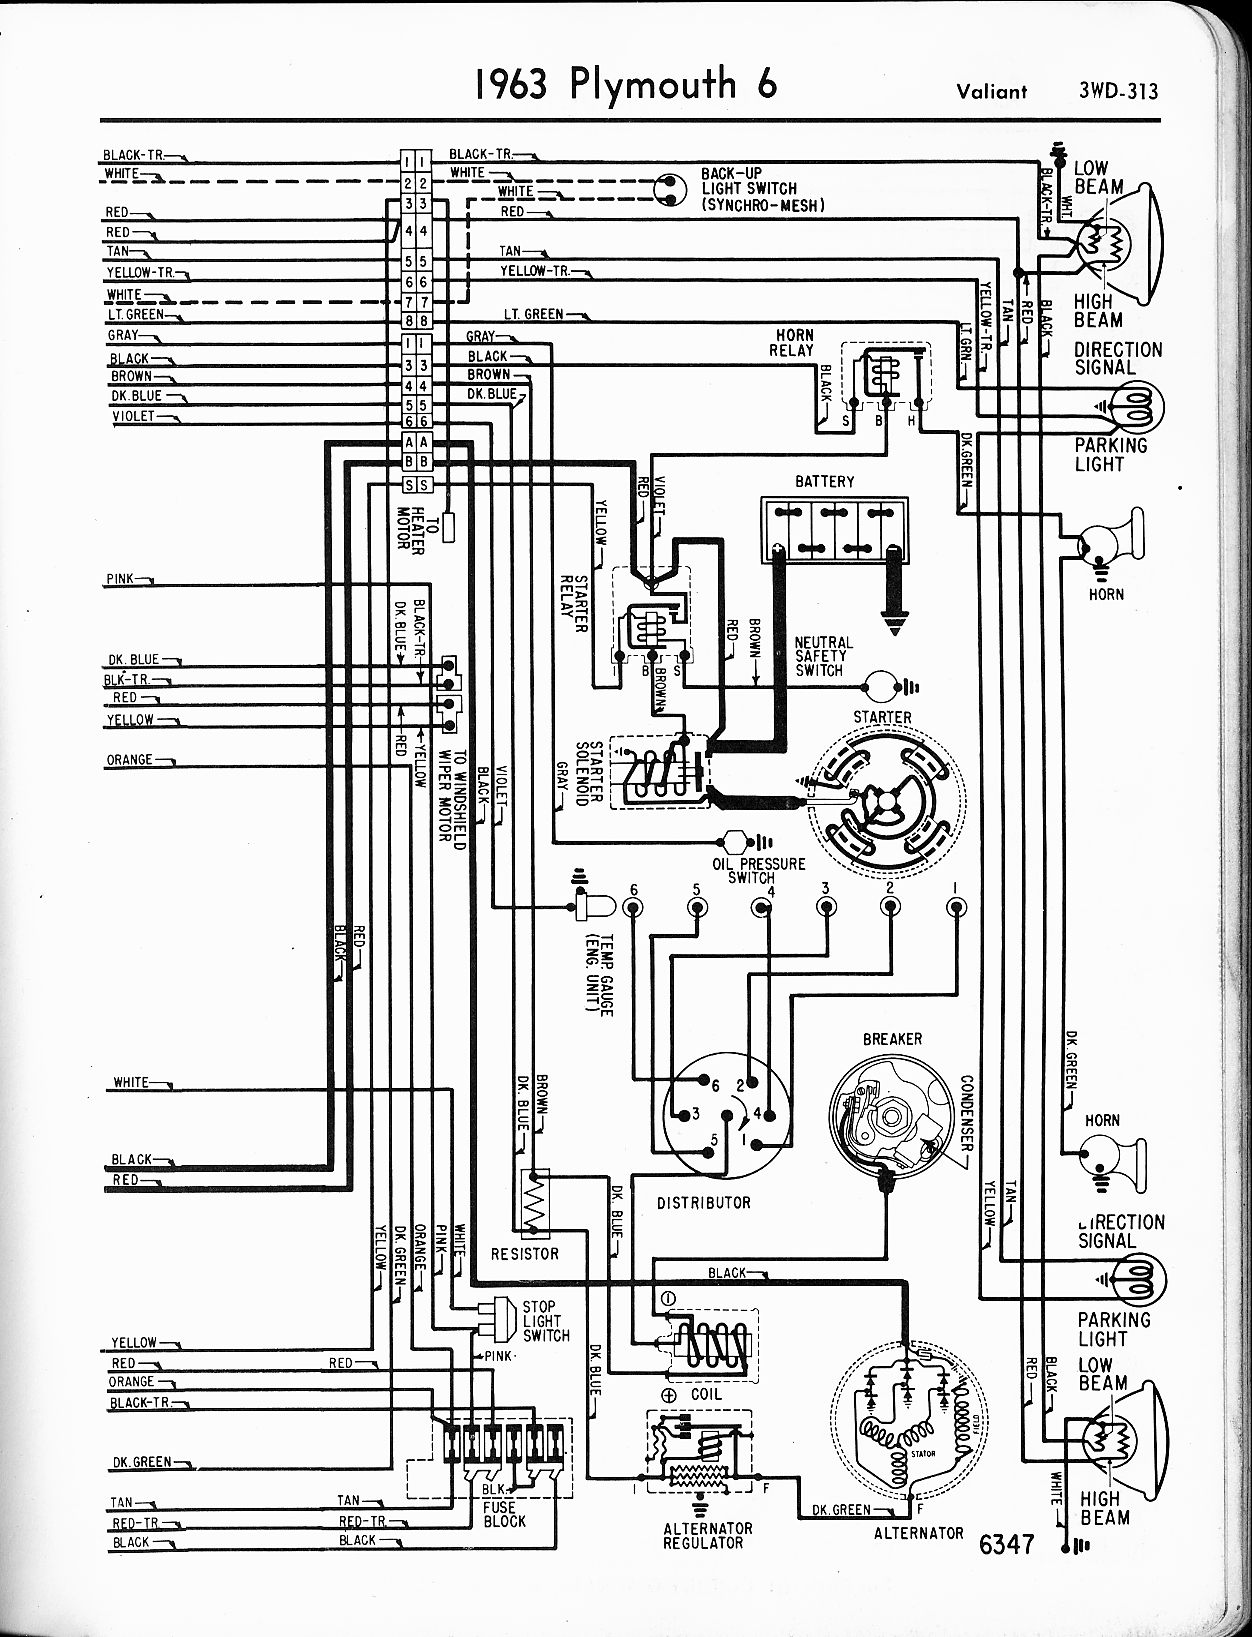 70 Mopar Wiring Diagram Library Ford F 150 1972 V8 Alternator 1956 1965 Plymouth The Old Car Manual Project Barracuda 1970